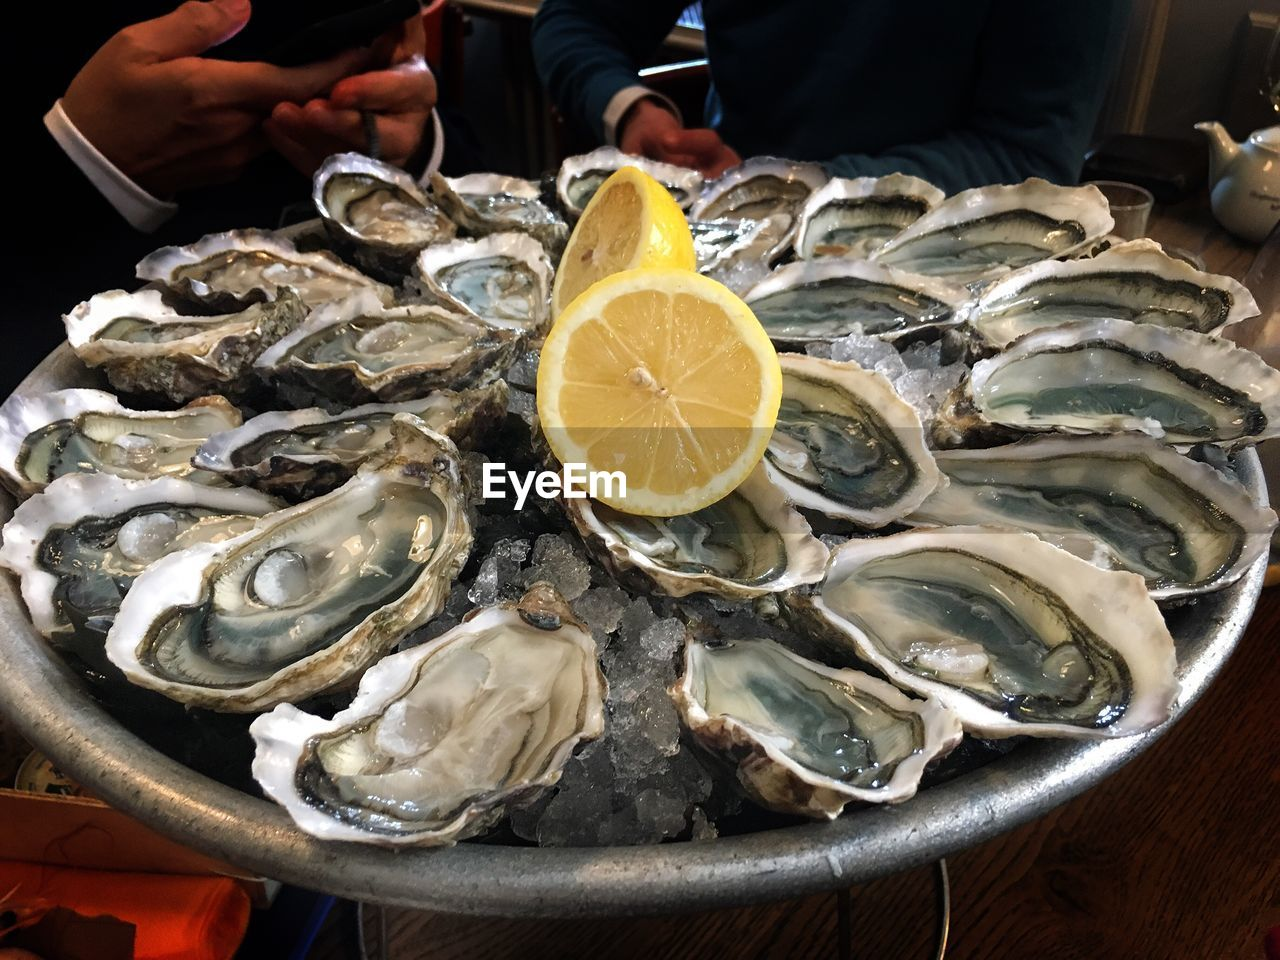 seafood, food and drink, human hand, food, real people, one person, lemon, oyster, freshness, human body part, healthy eating, men, holding, table, indoors, day, close-up, ready-to-eat, people